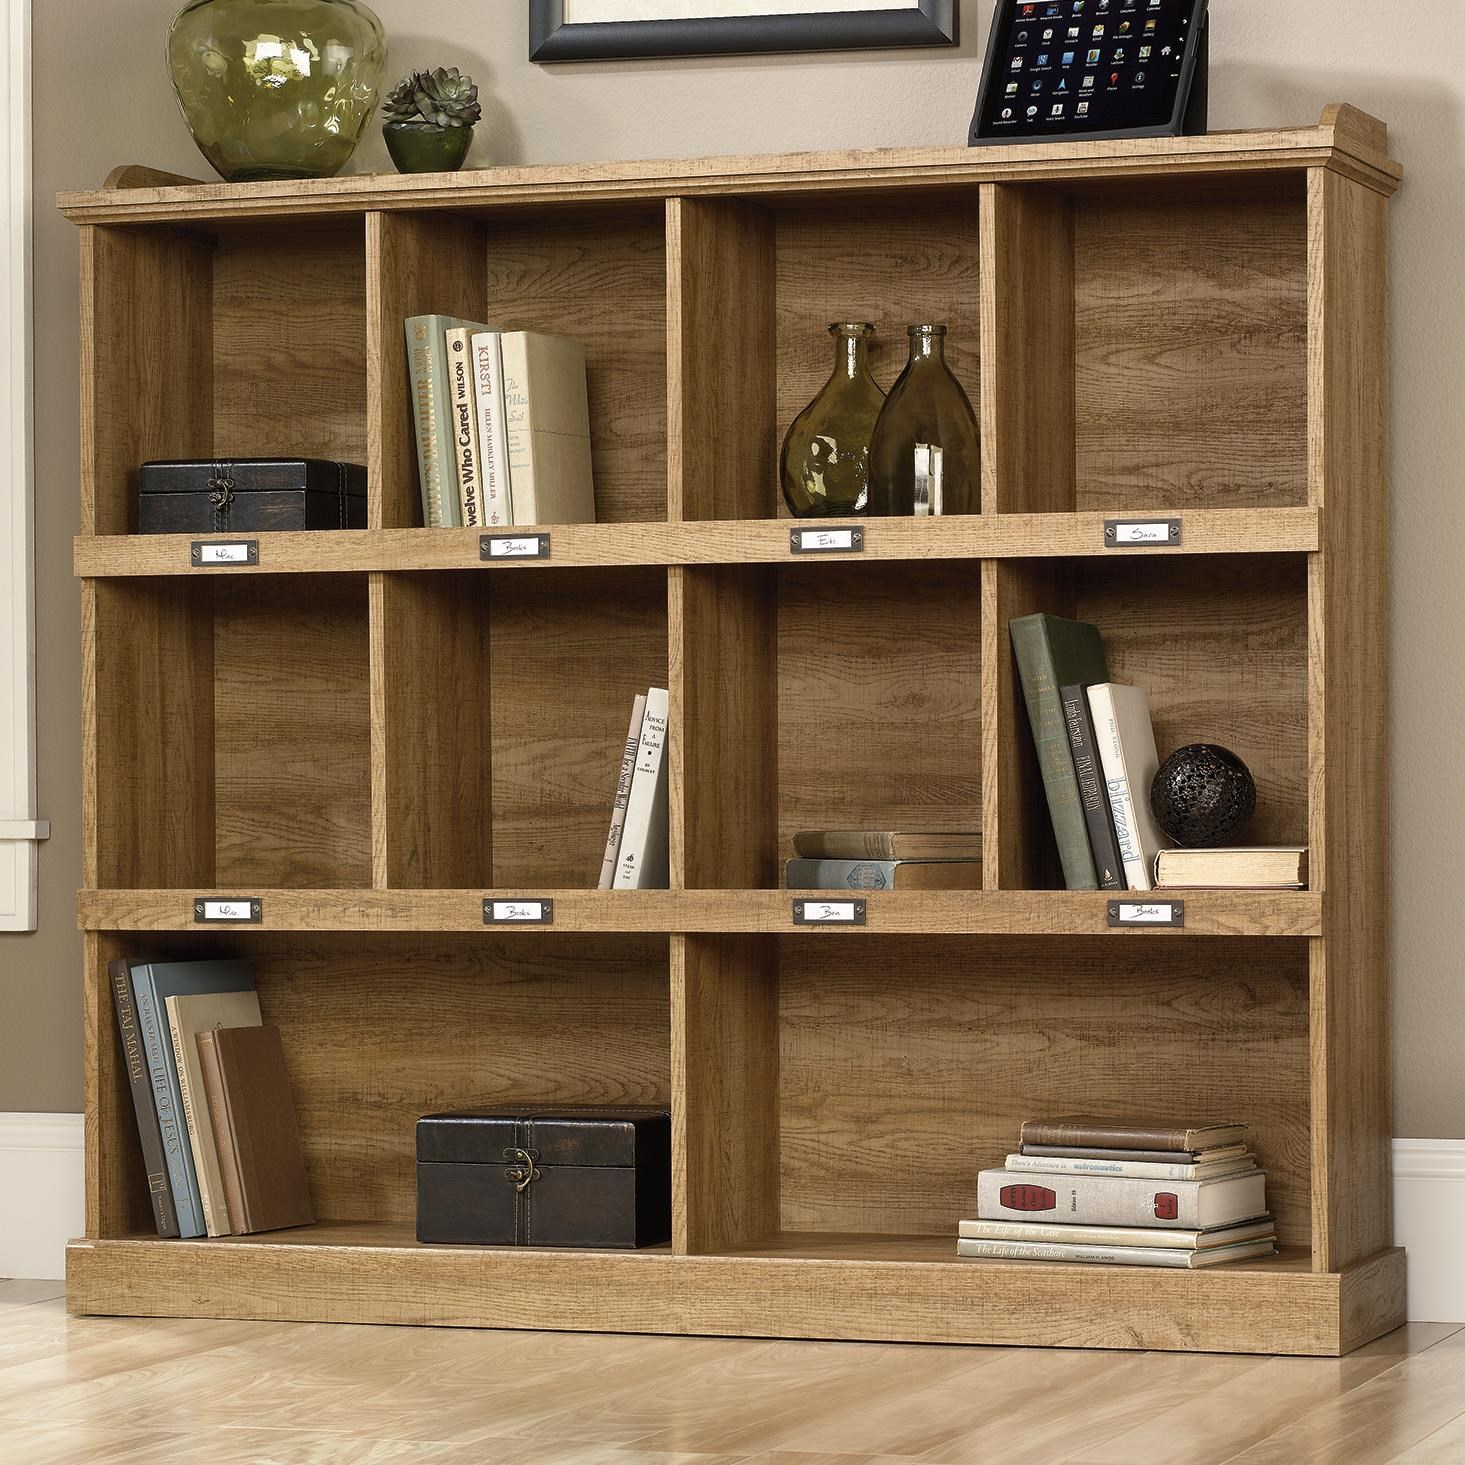 Barrister Lane Bookcase With Cubbyhole Storage And Metal Label Holders By  Sauder